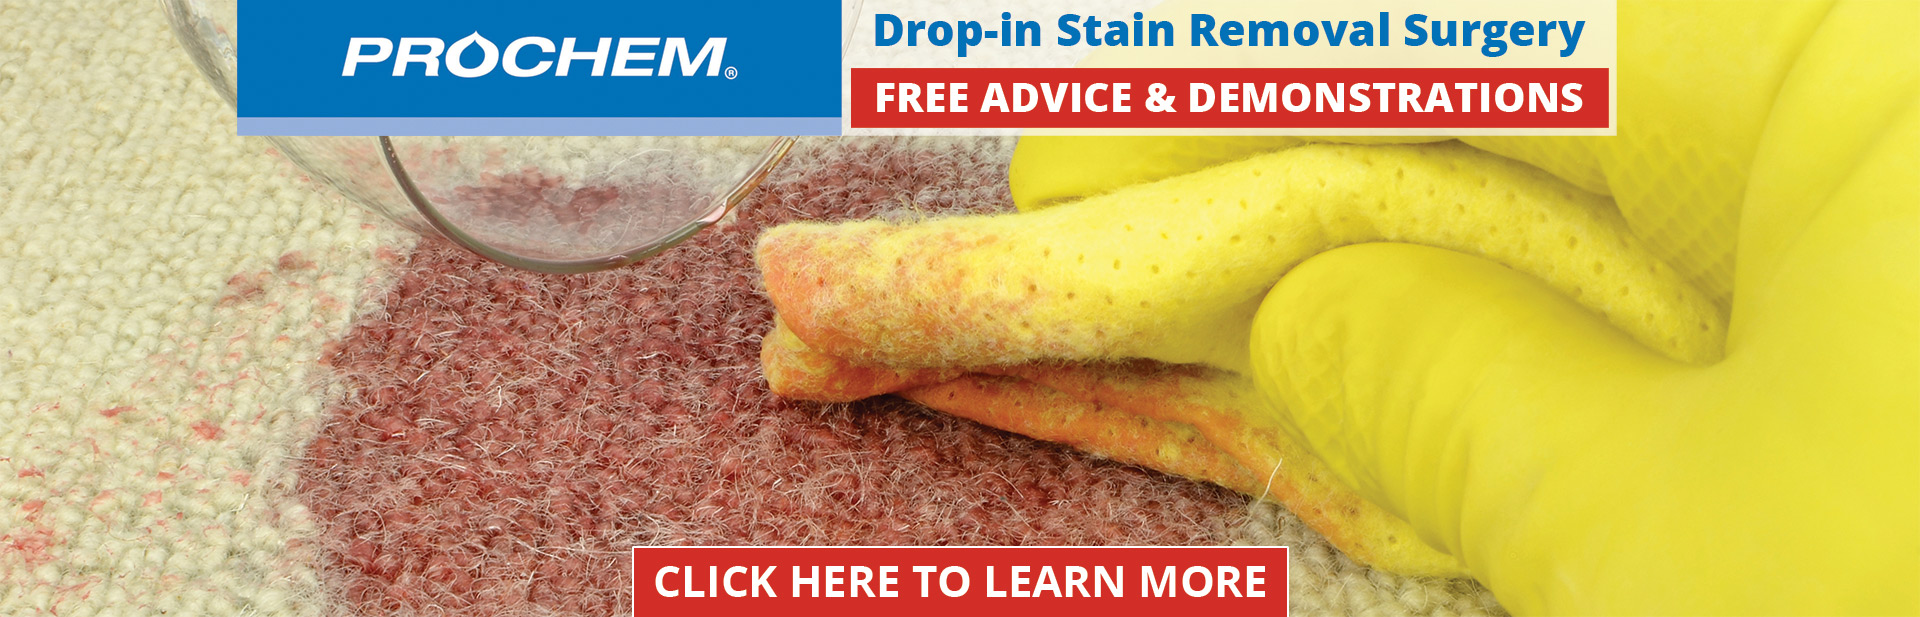 Drop-in Stain Removal Surgery